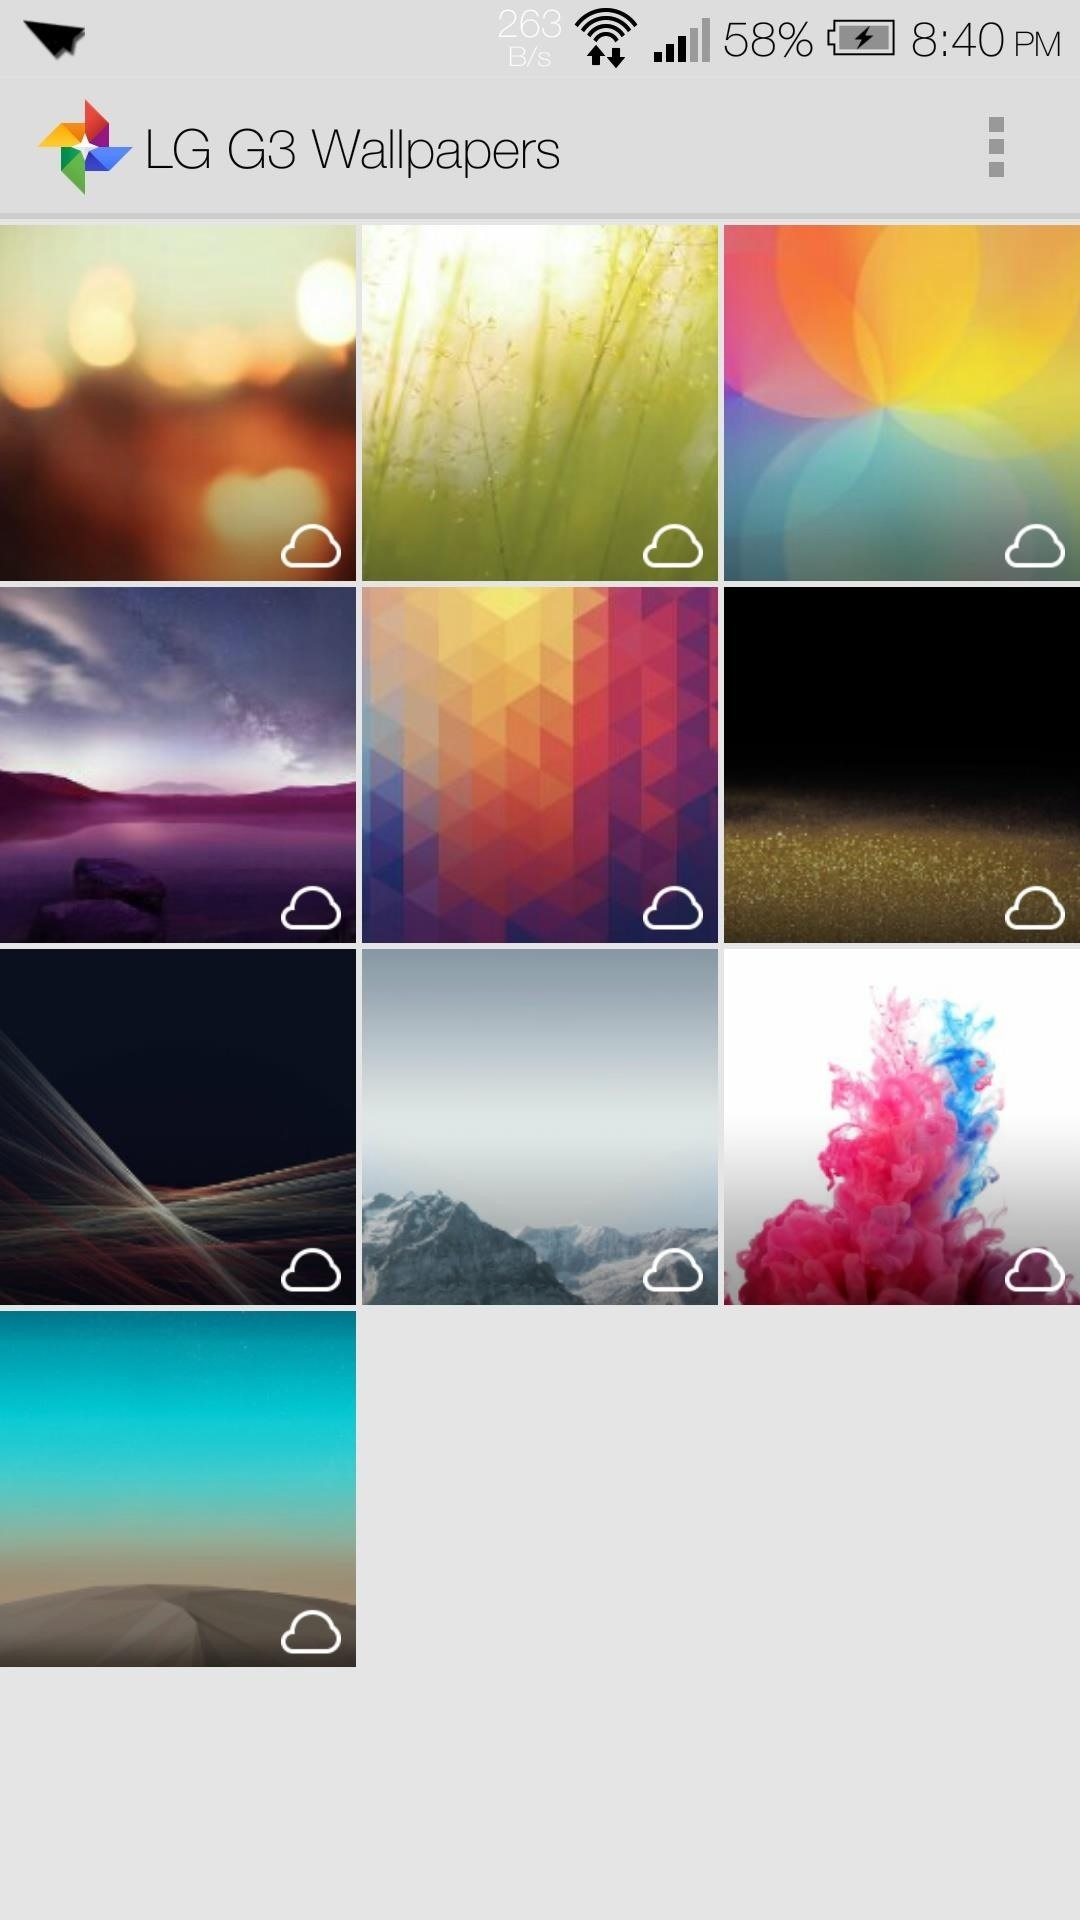 How to Get the LG G3 Exclusive Keyboard, Sounds, & Wallpapers on Any Android Phone or Tablet